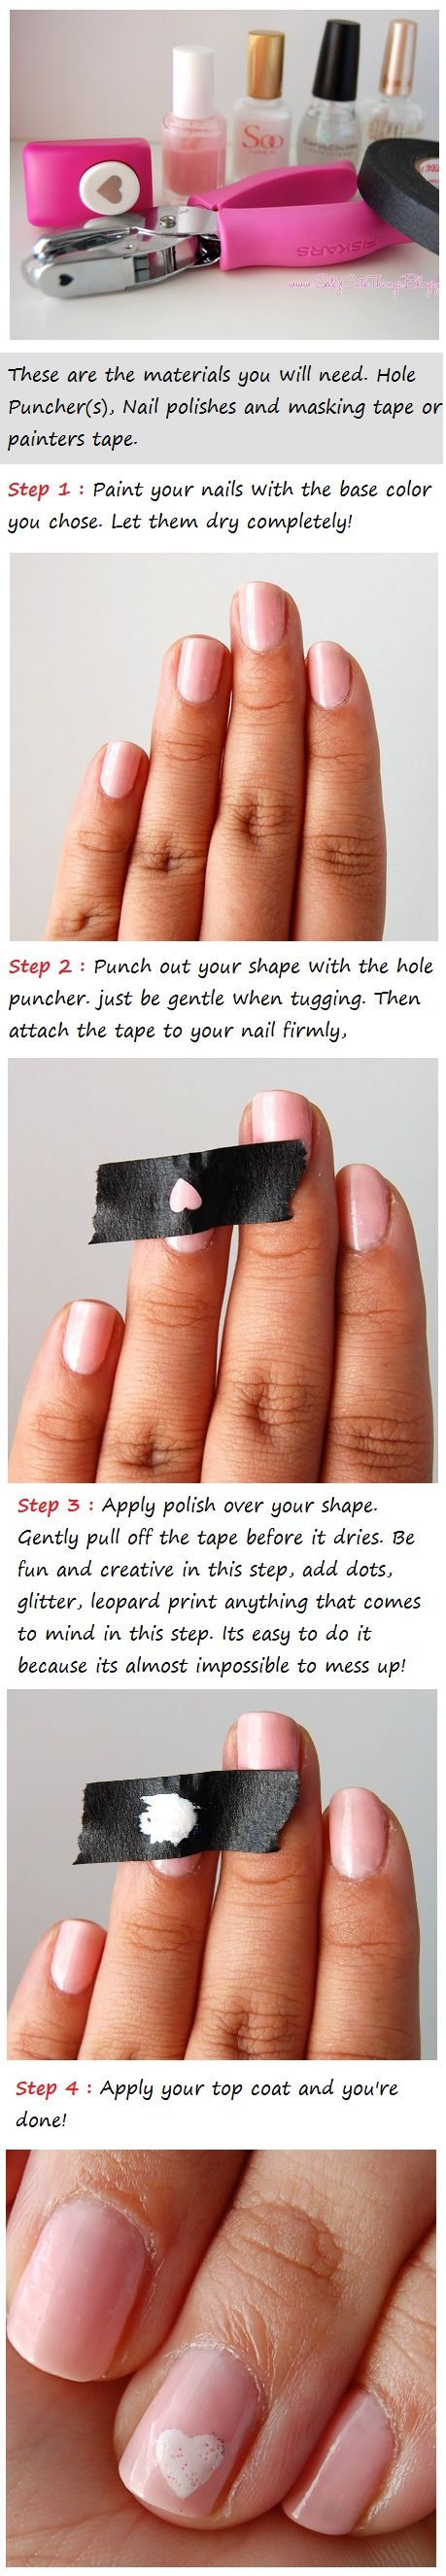 a heart on your Nails | Beauty Tutorials: Beauty Tutorials, Heart Nails, Idea, Nails Art, Nails Design, Holepunch, Nails Polish, Hole Punch, Nails Tutorials